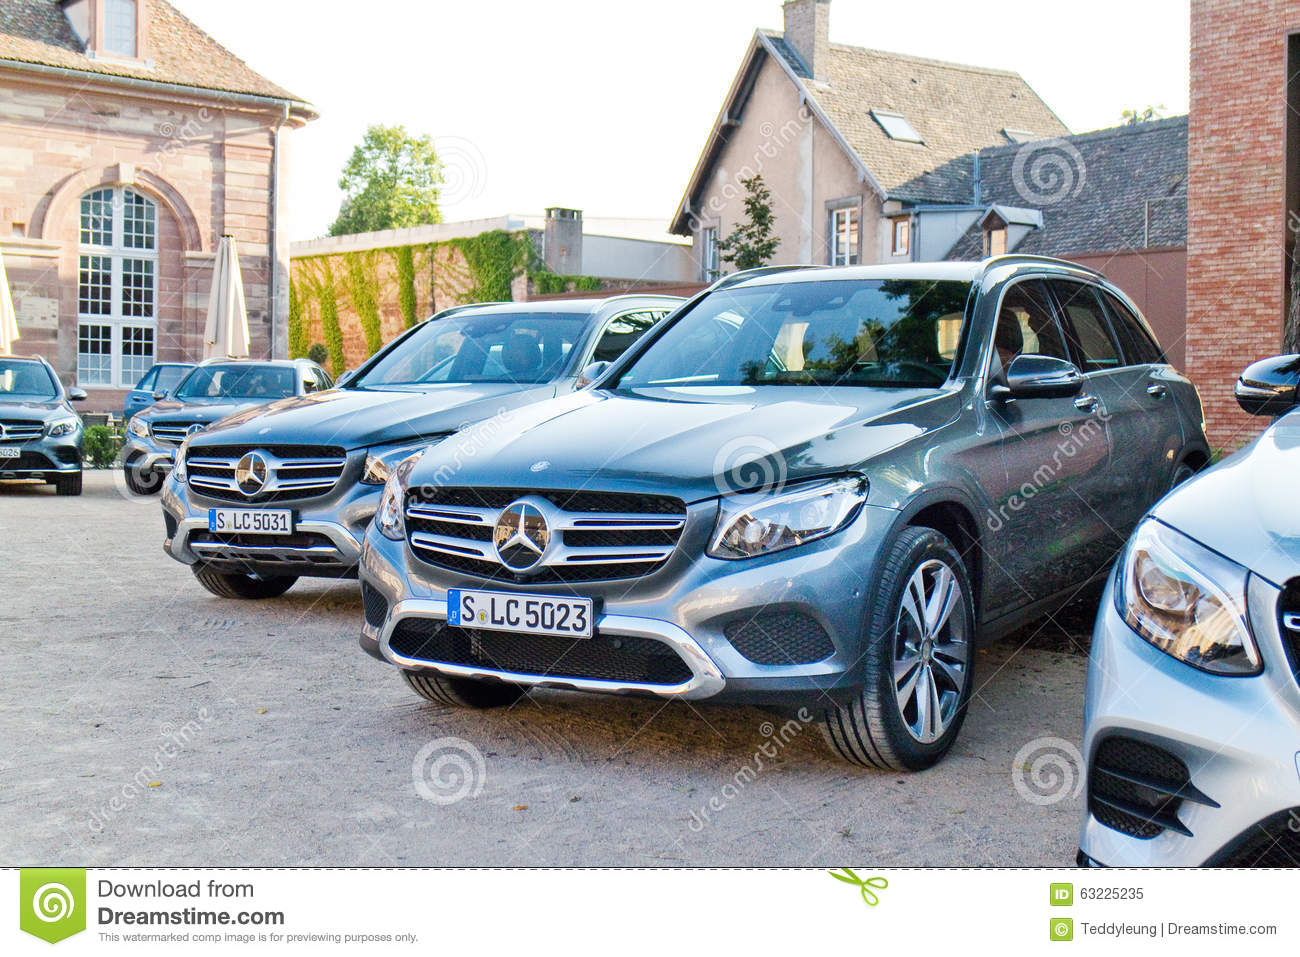 Mercedes-Benz All New GLC SUV 2015 Test Drive Day Editorial